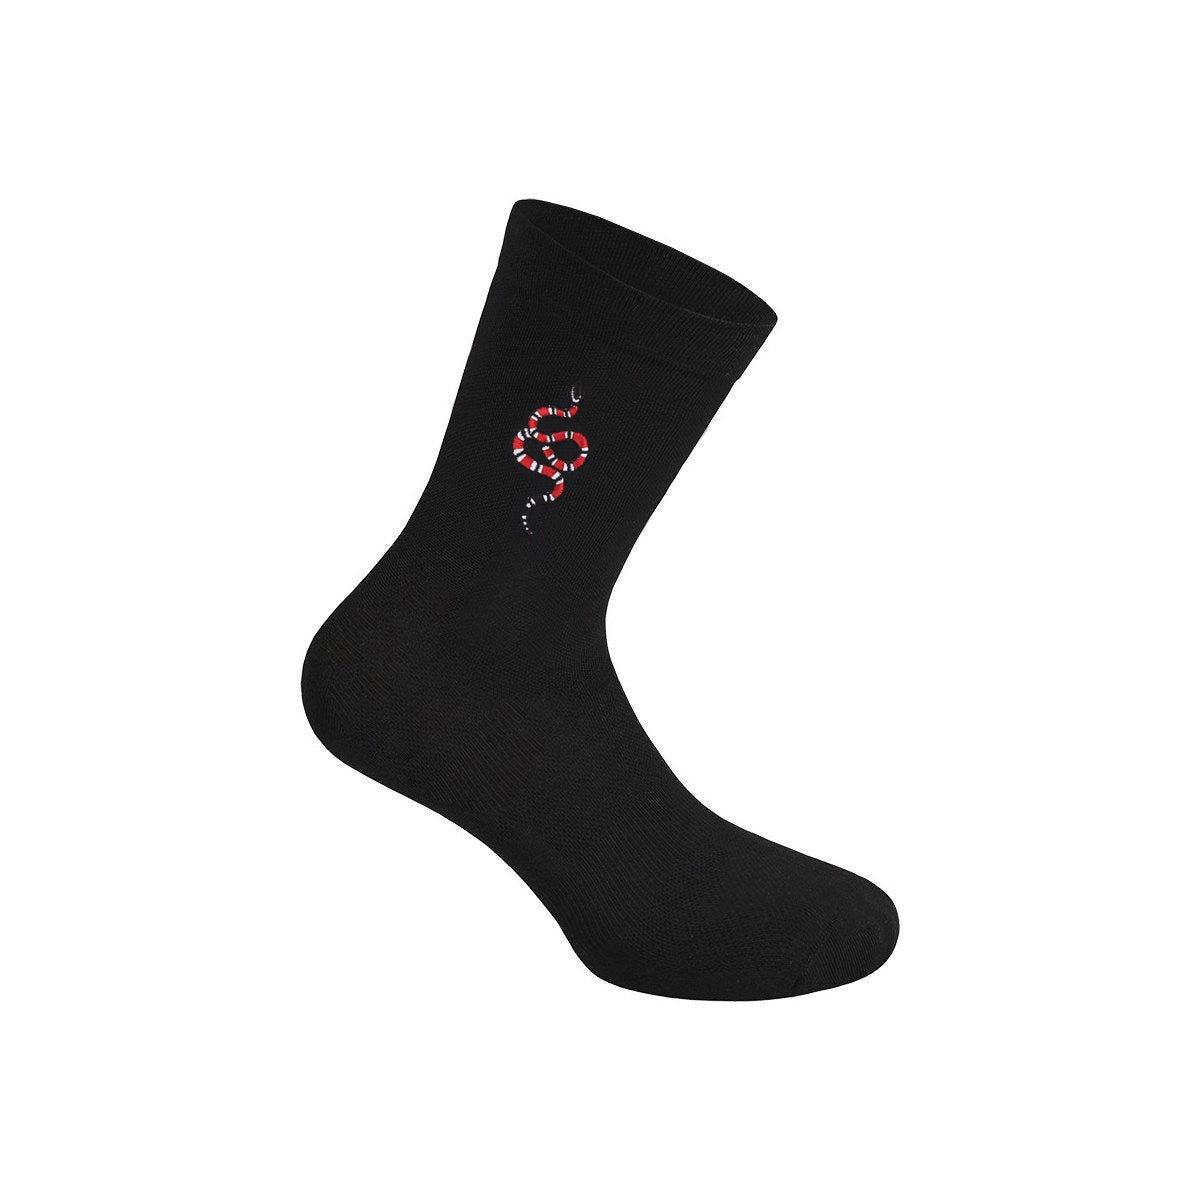 Glow In The Dark Snake Socks